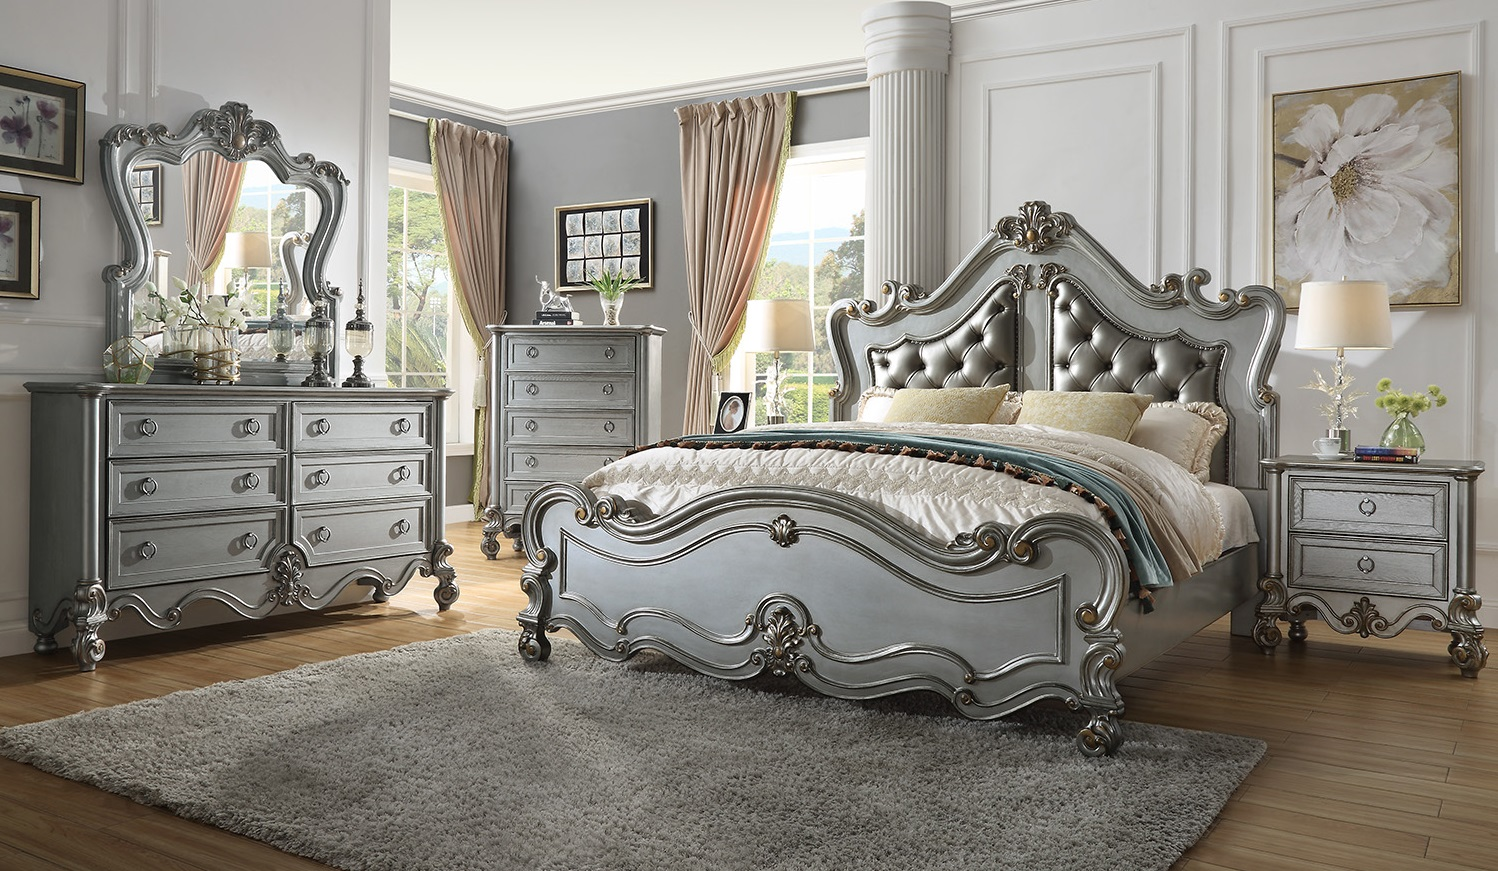 French Provincial Bedroom 999